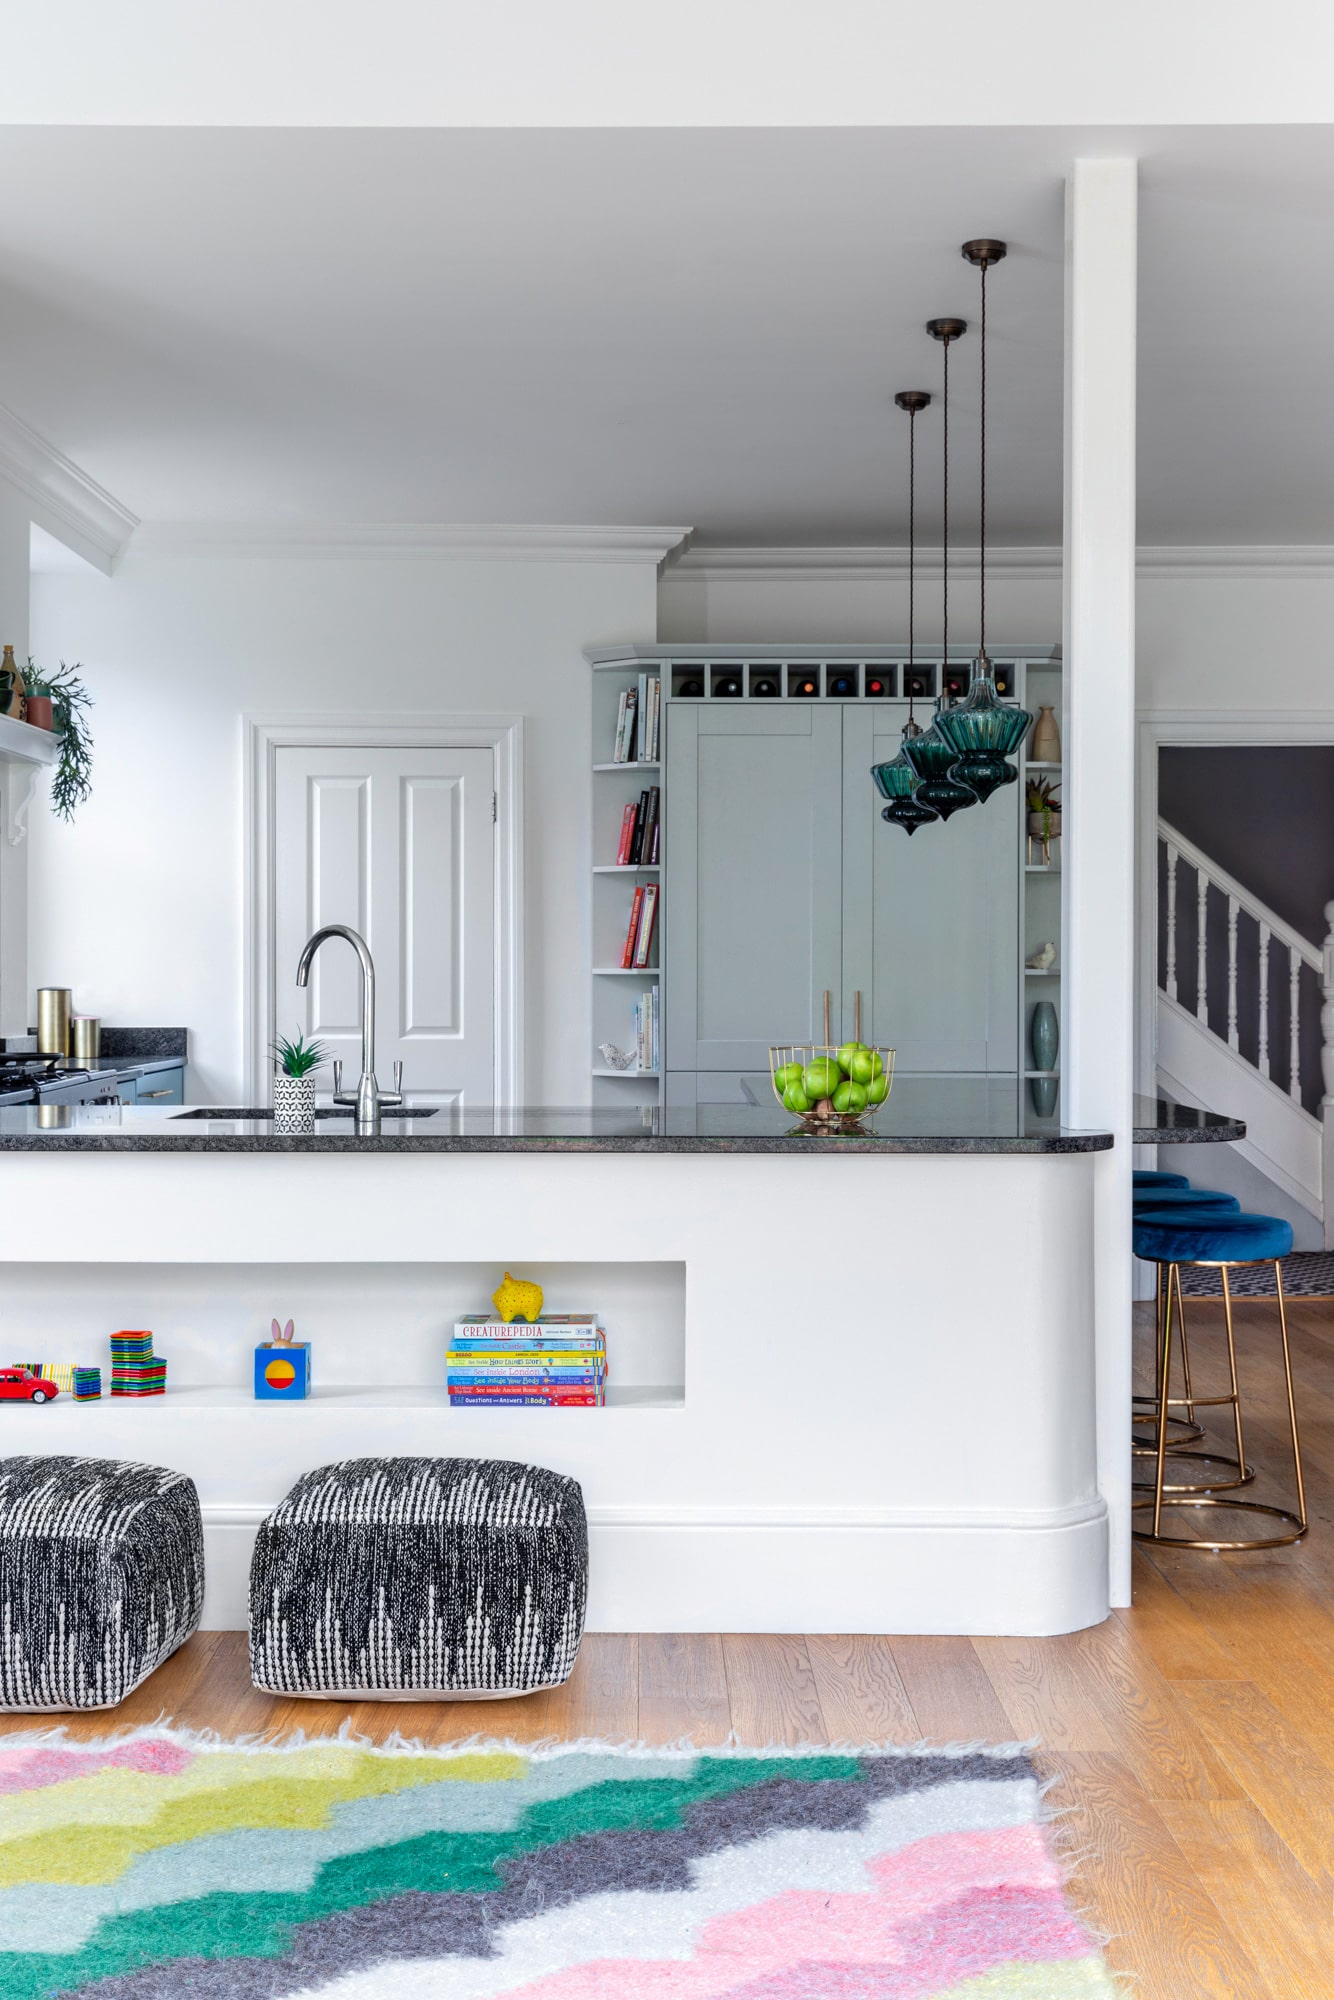 Interior photo from a living room to a kitchen